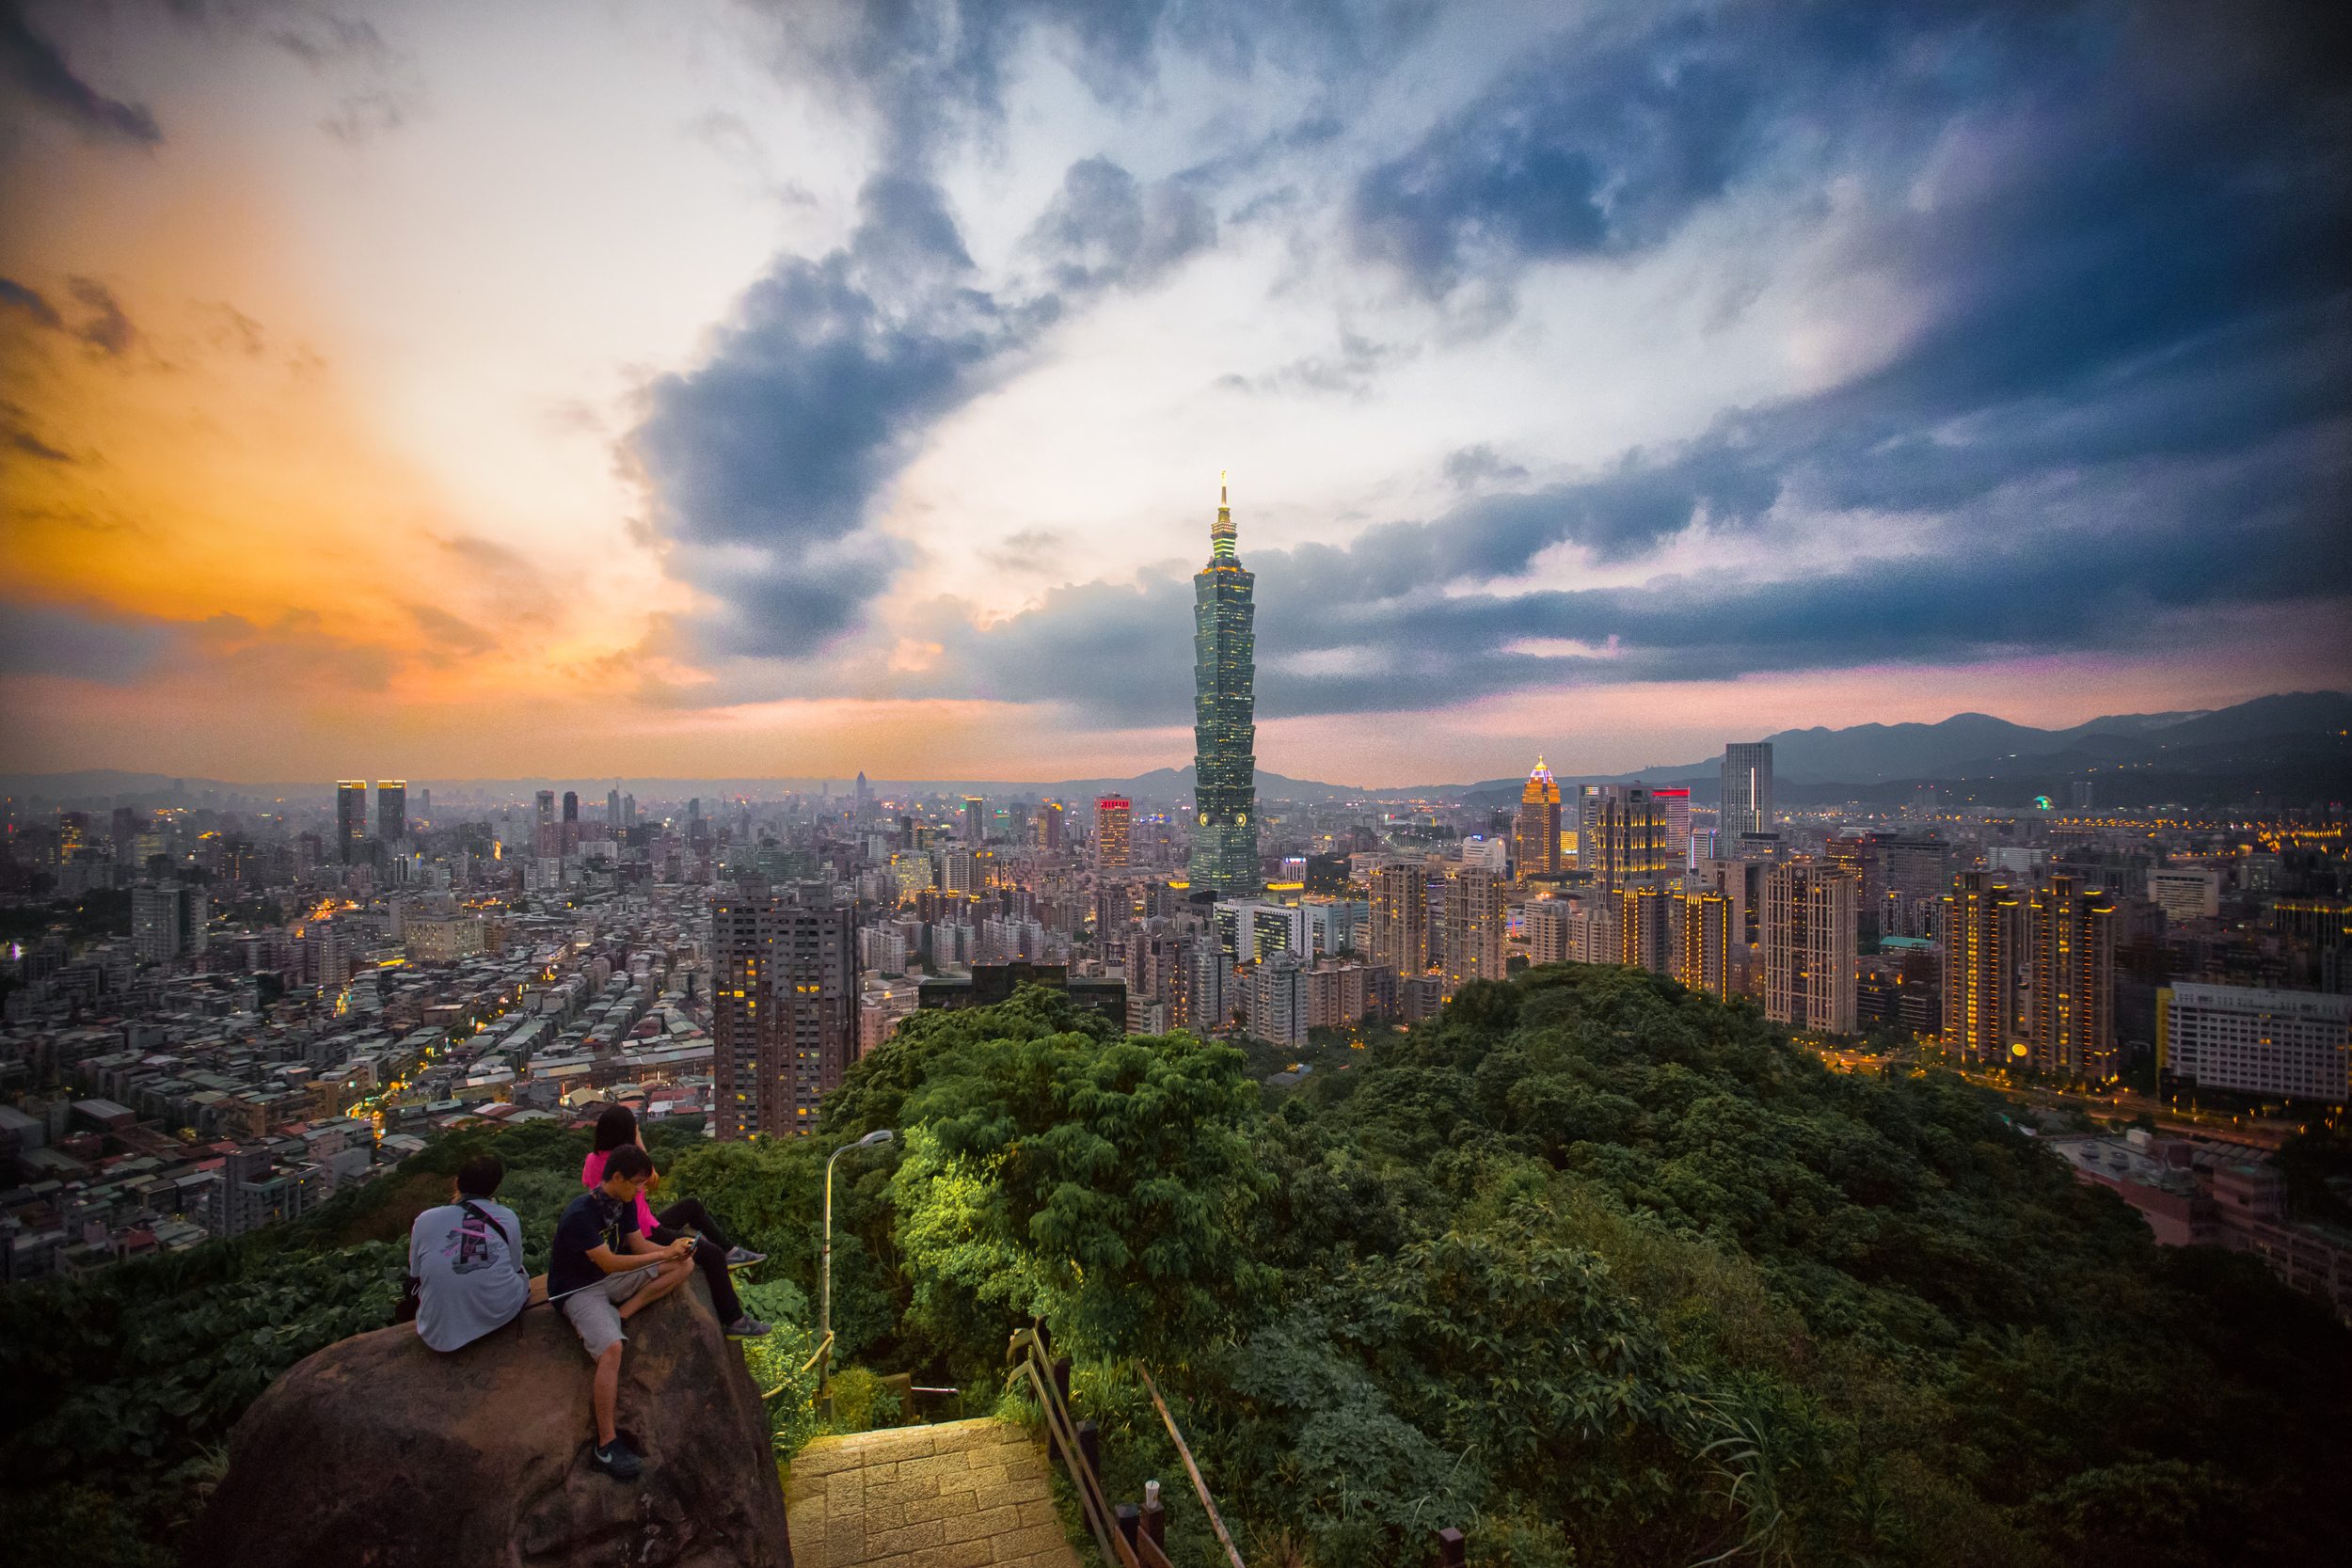 One of the popular photo spots on Elephant Mountain (象山)